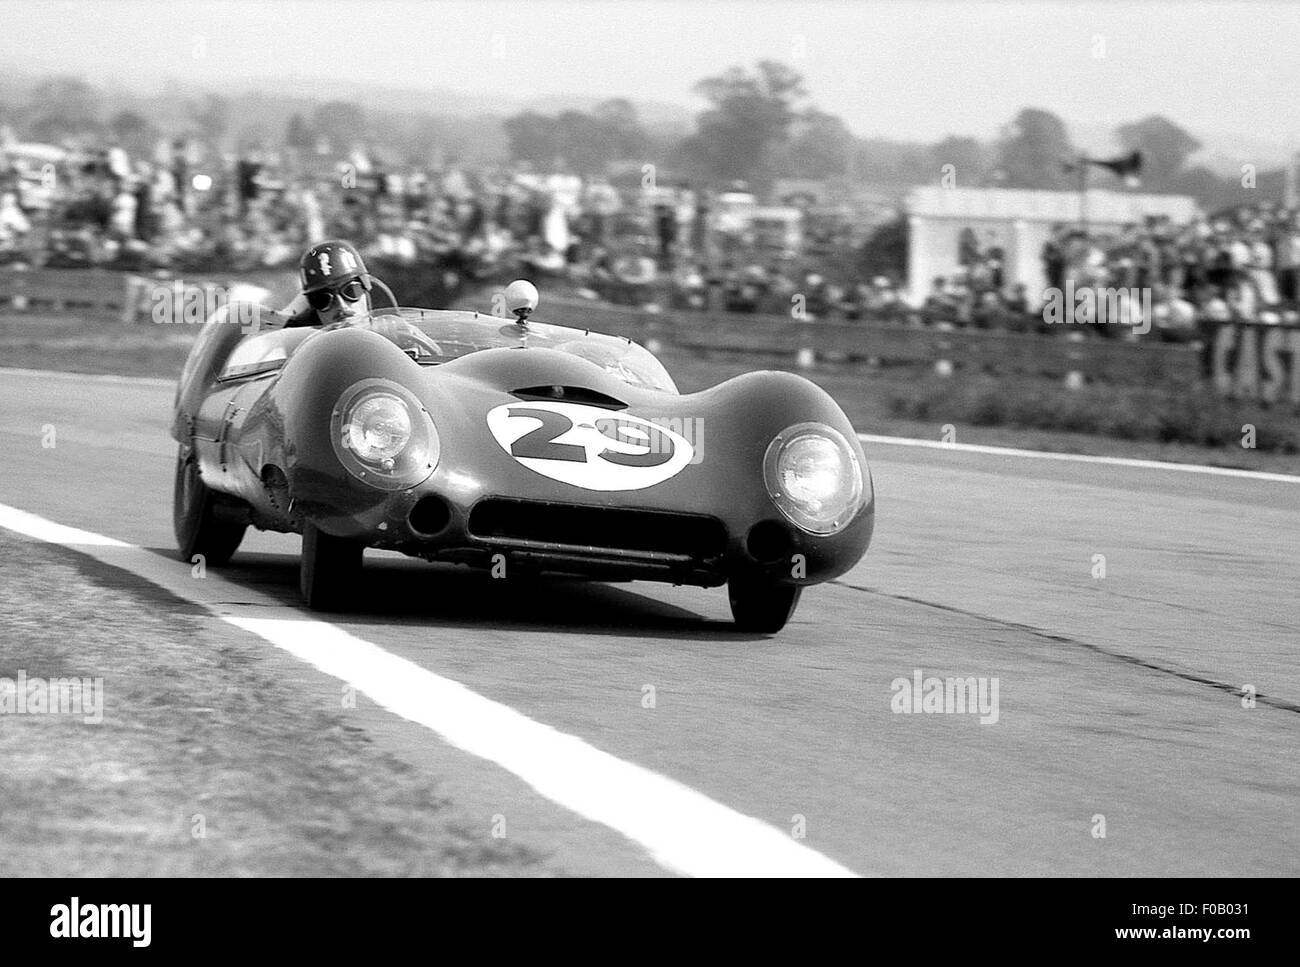 Goodwood Tourist Trophy 5th September 1959. Graham Hill,Alan Stacey Lotus 15 Climax. - Stock Image